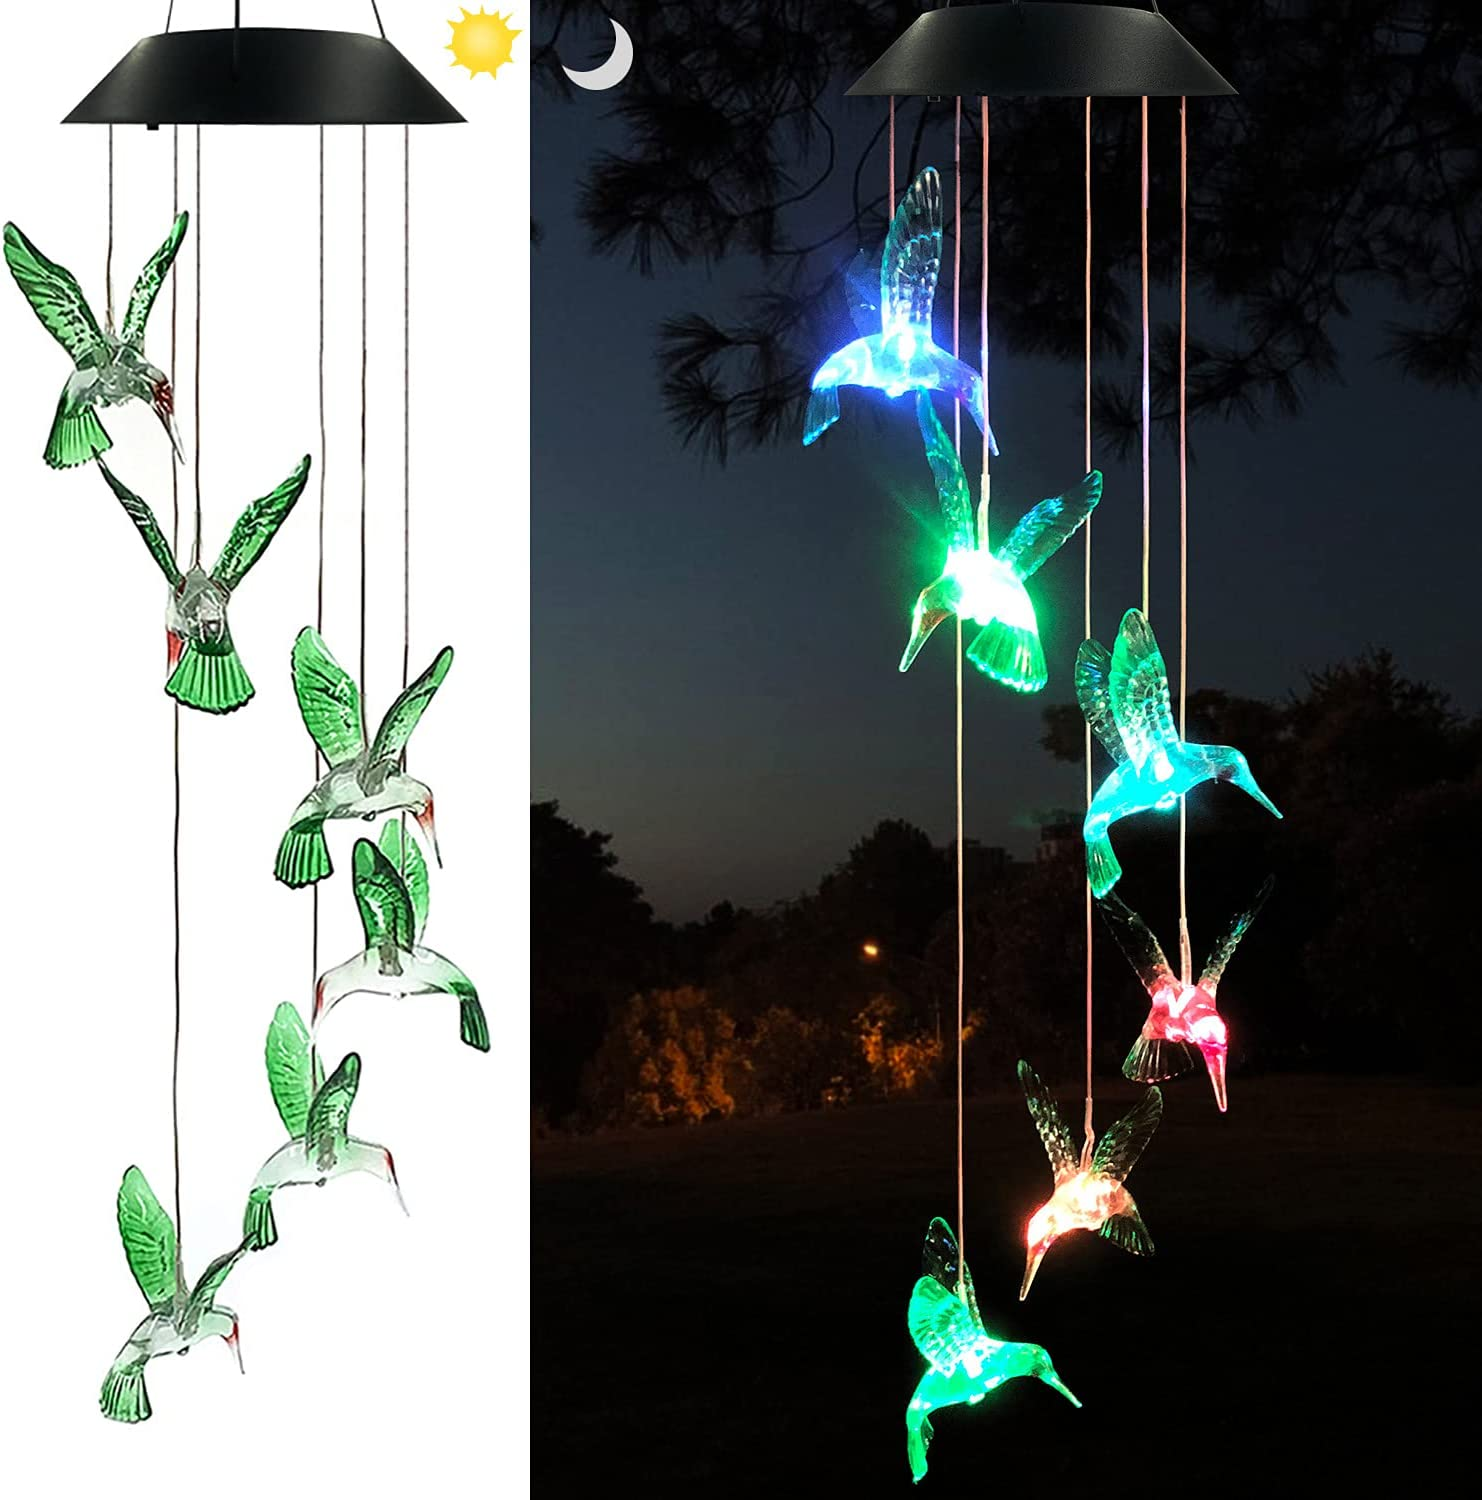 Eleven Direction Hummingbird Solar Chimes mobiles Home Decorations,Gifts for mom Birthday Gifts for Women,Outdoor Garden Decor Gifts